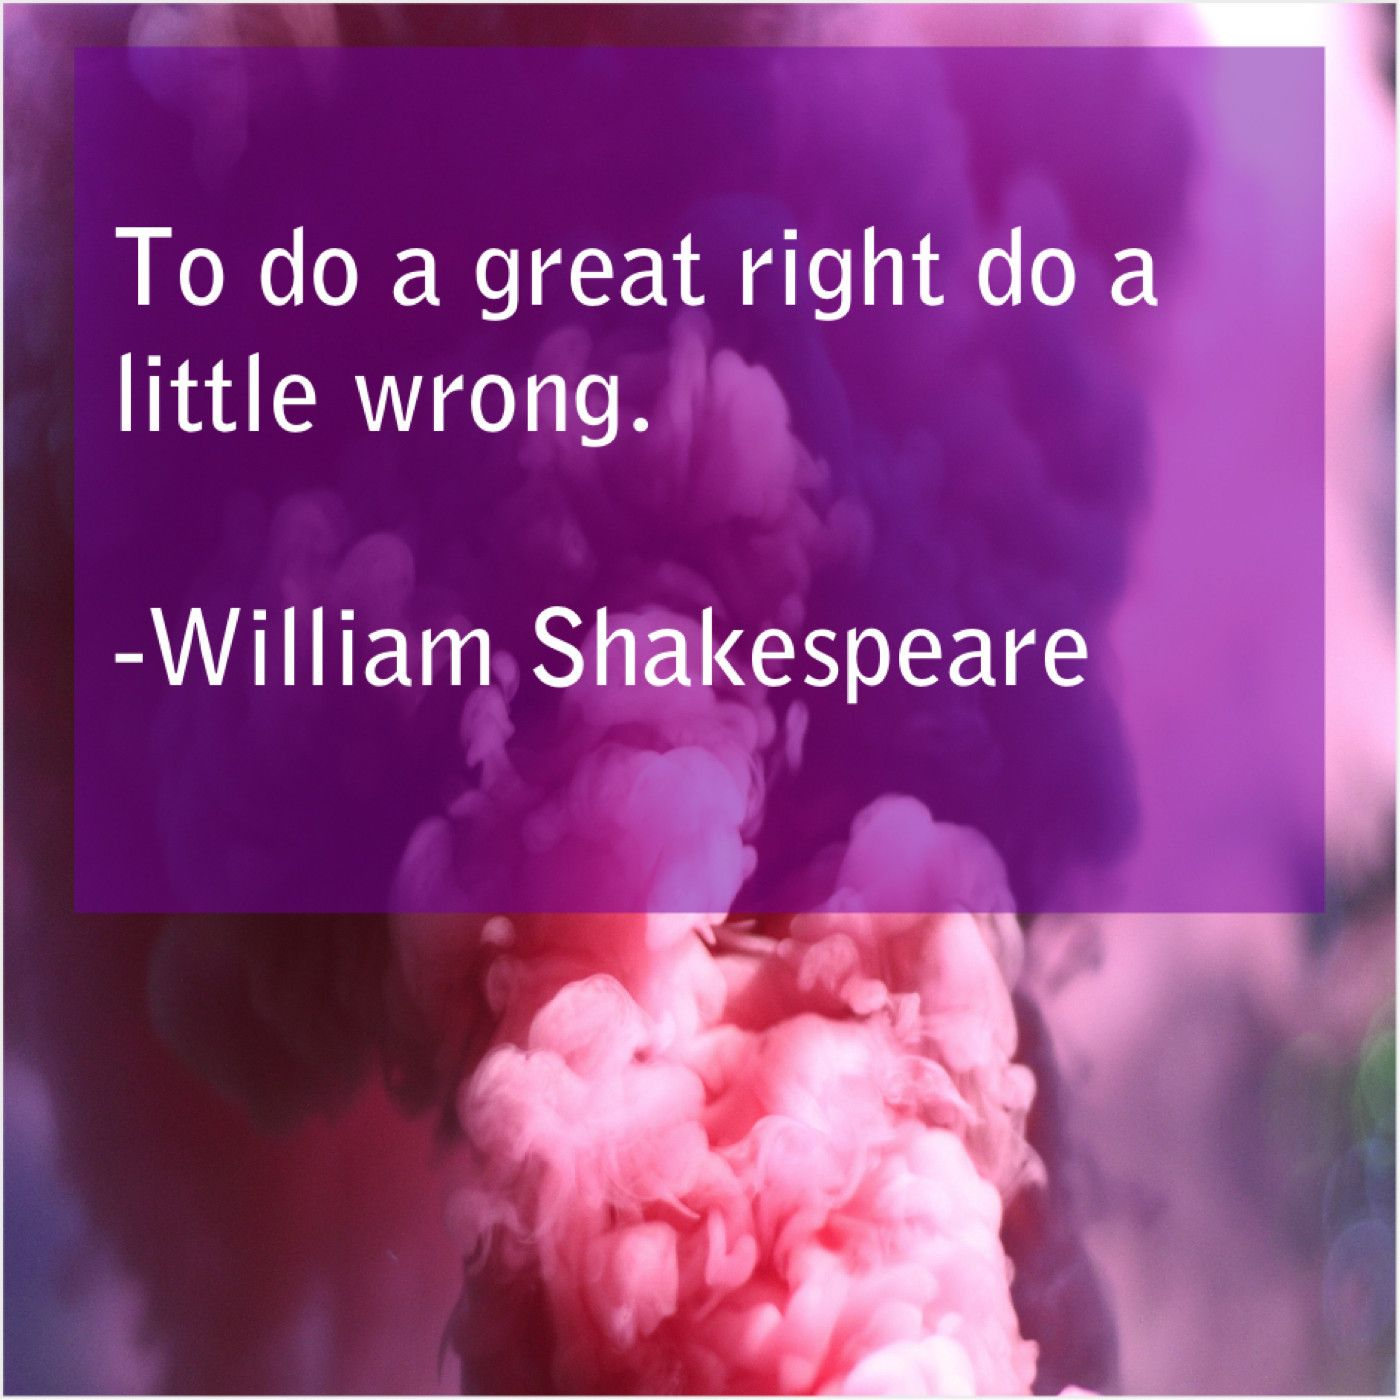 William Shakespeare To Do A Great Right William Shakespeare Shakespeare William Shakespeare Quotes